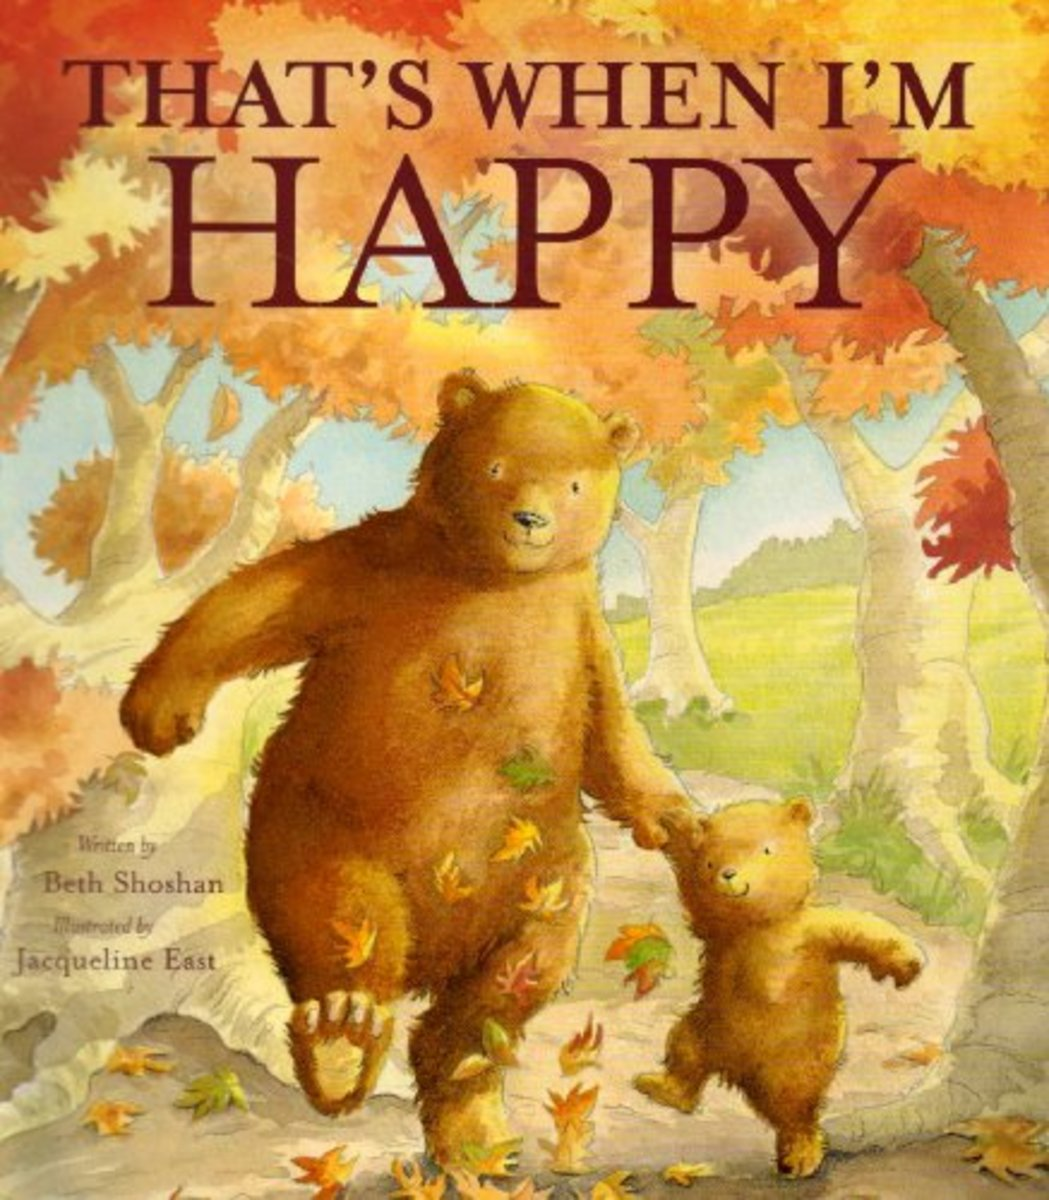 That's When I'm Happy by Beth Shoshan and Jaqueline East